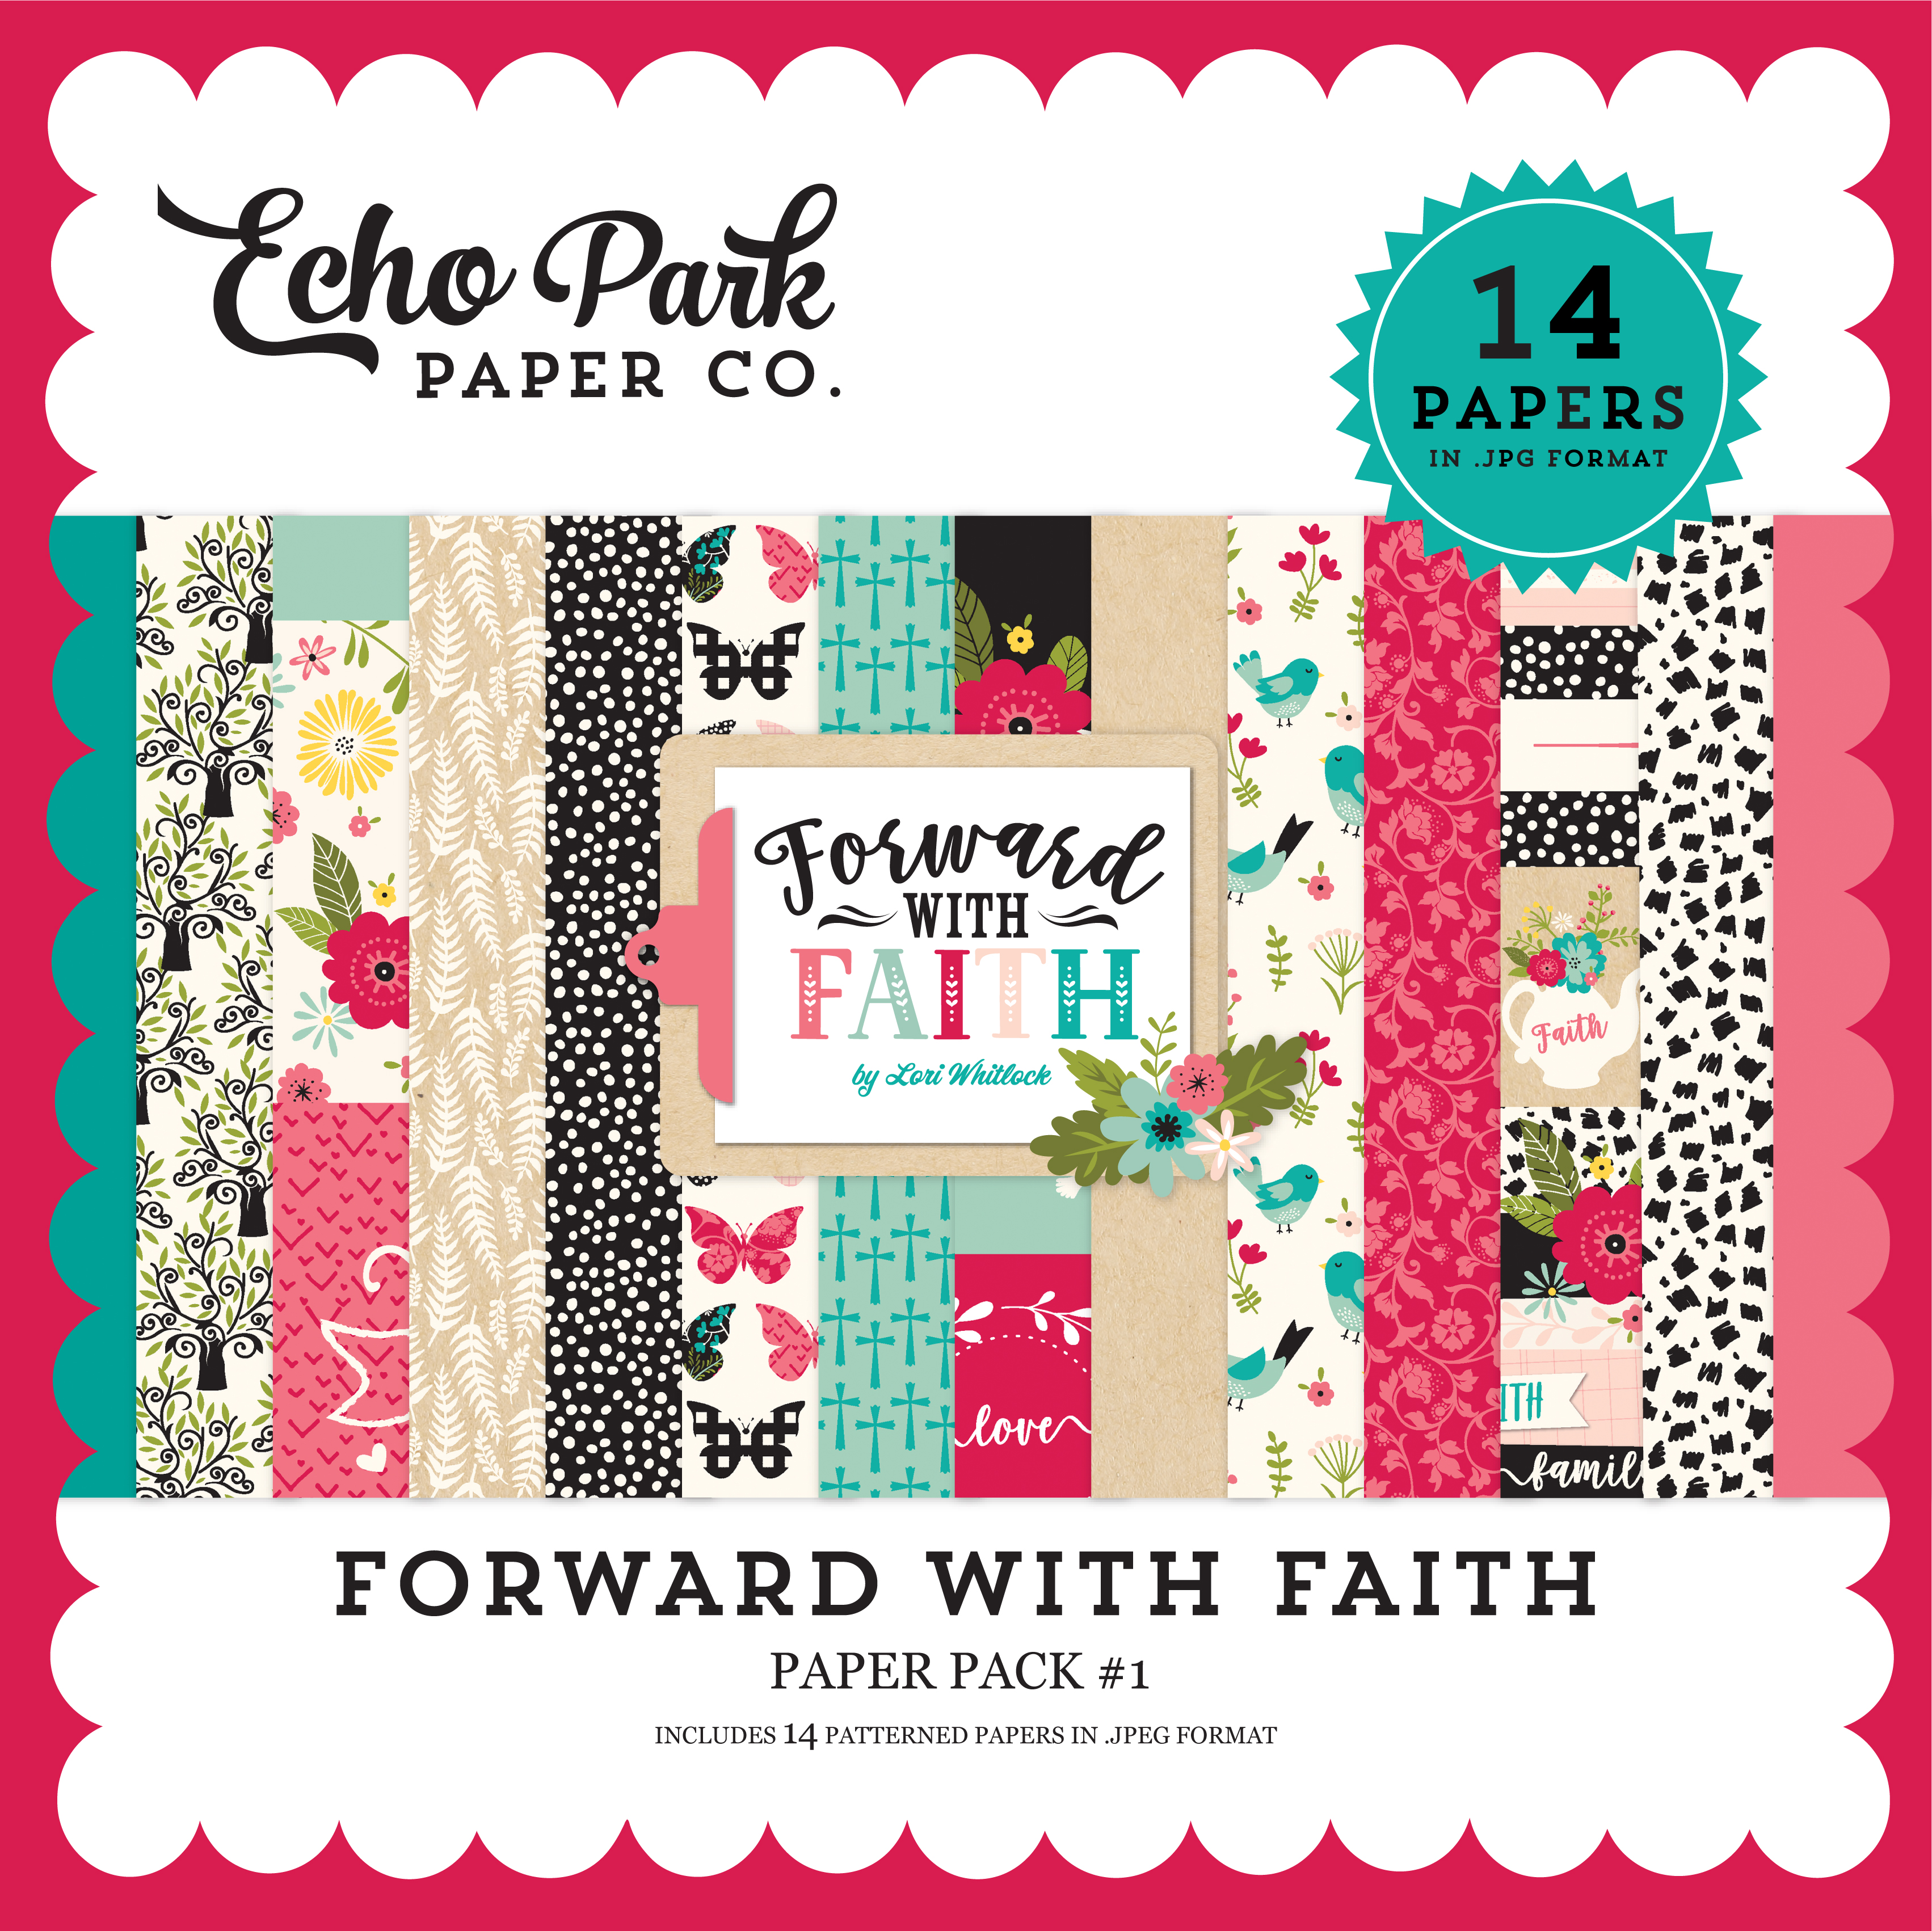 Forward with Faith Paper Pack #1